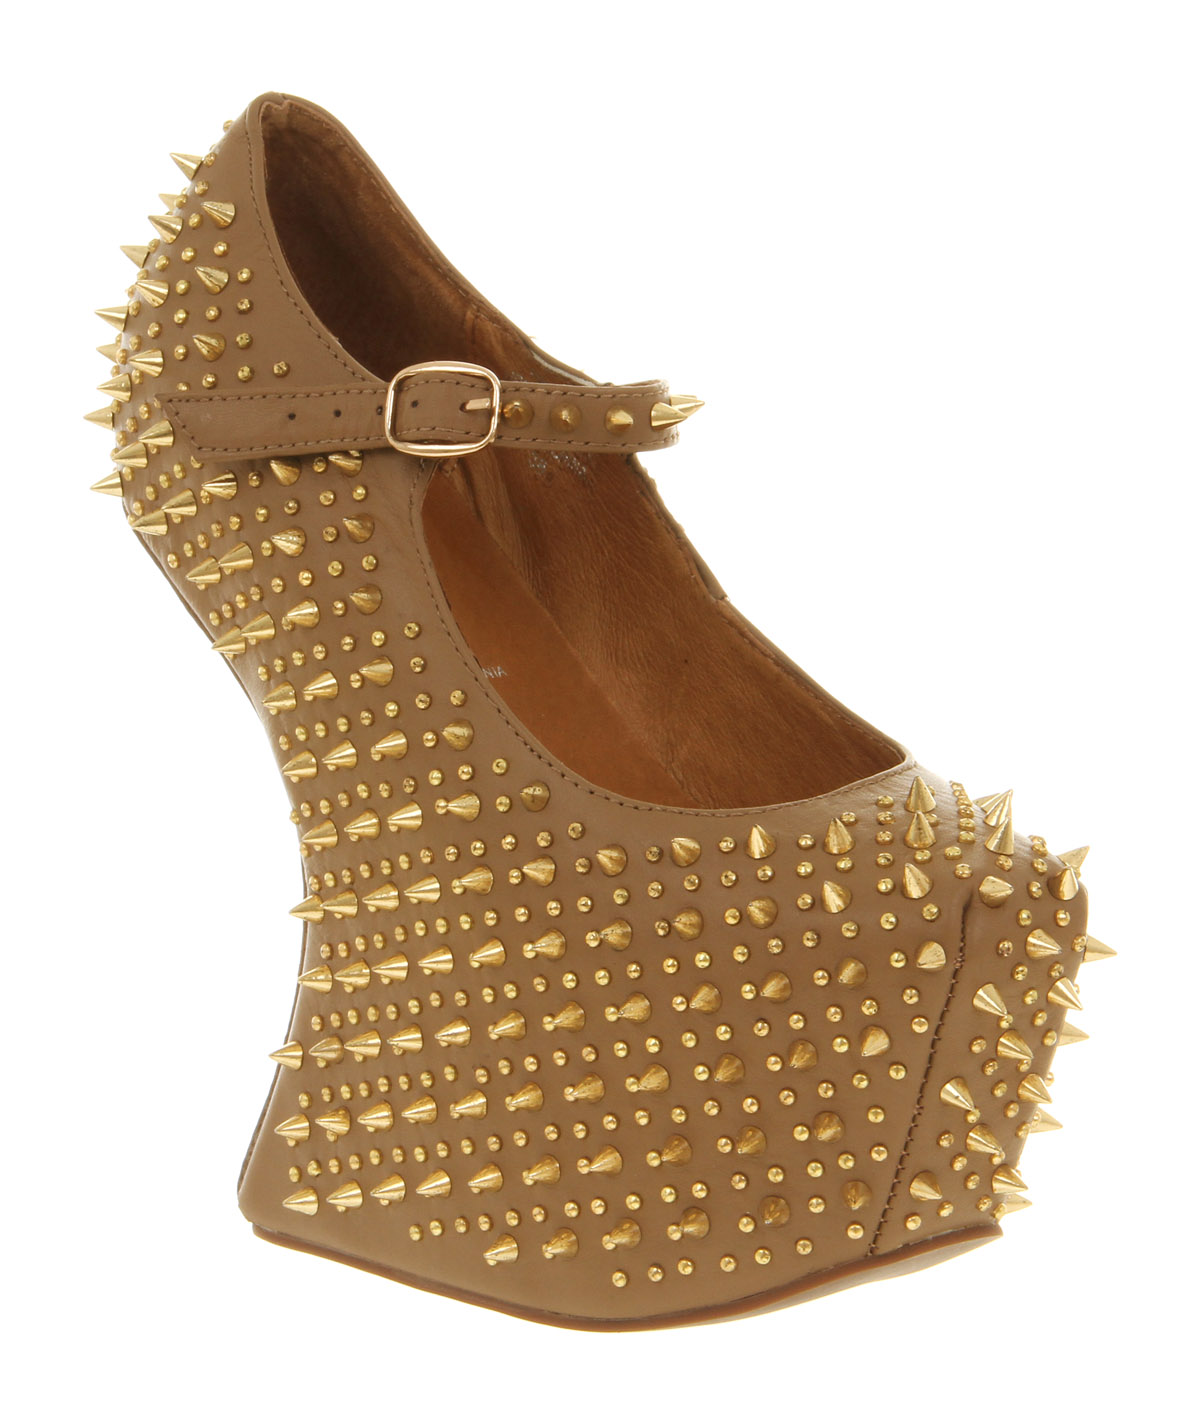 eac449ab3d1 Womens Jeffrey Campbell Prickly Wedge Taupe Leather Gold Spike Heels ...